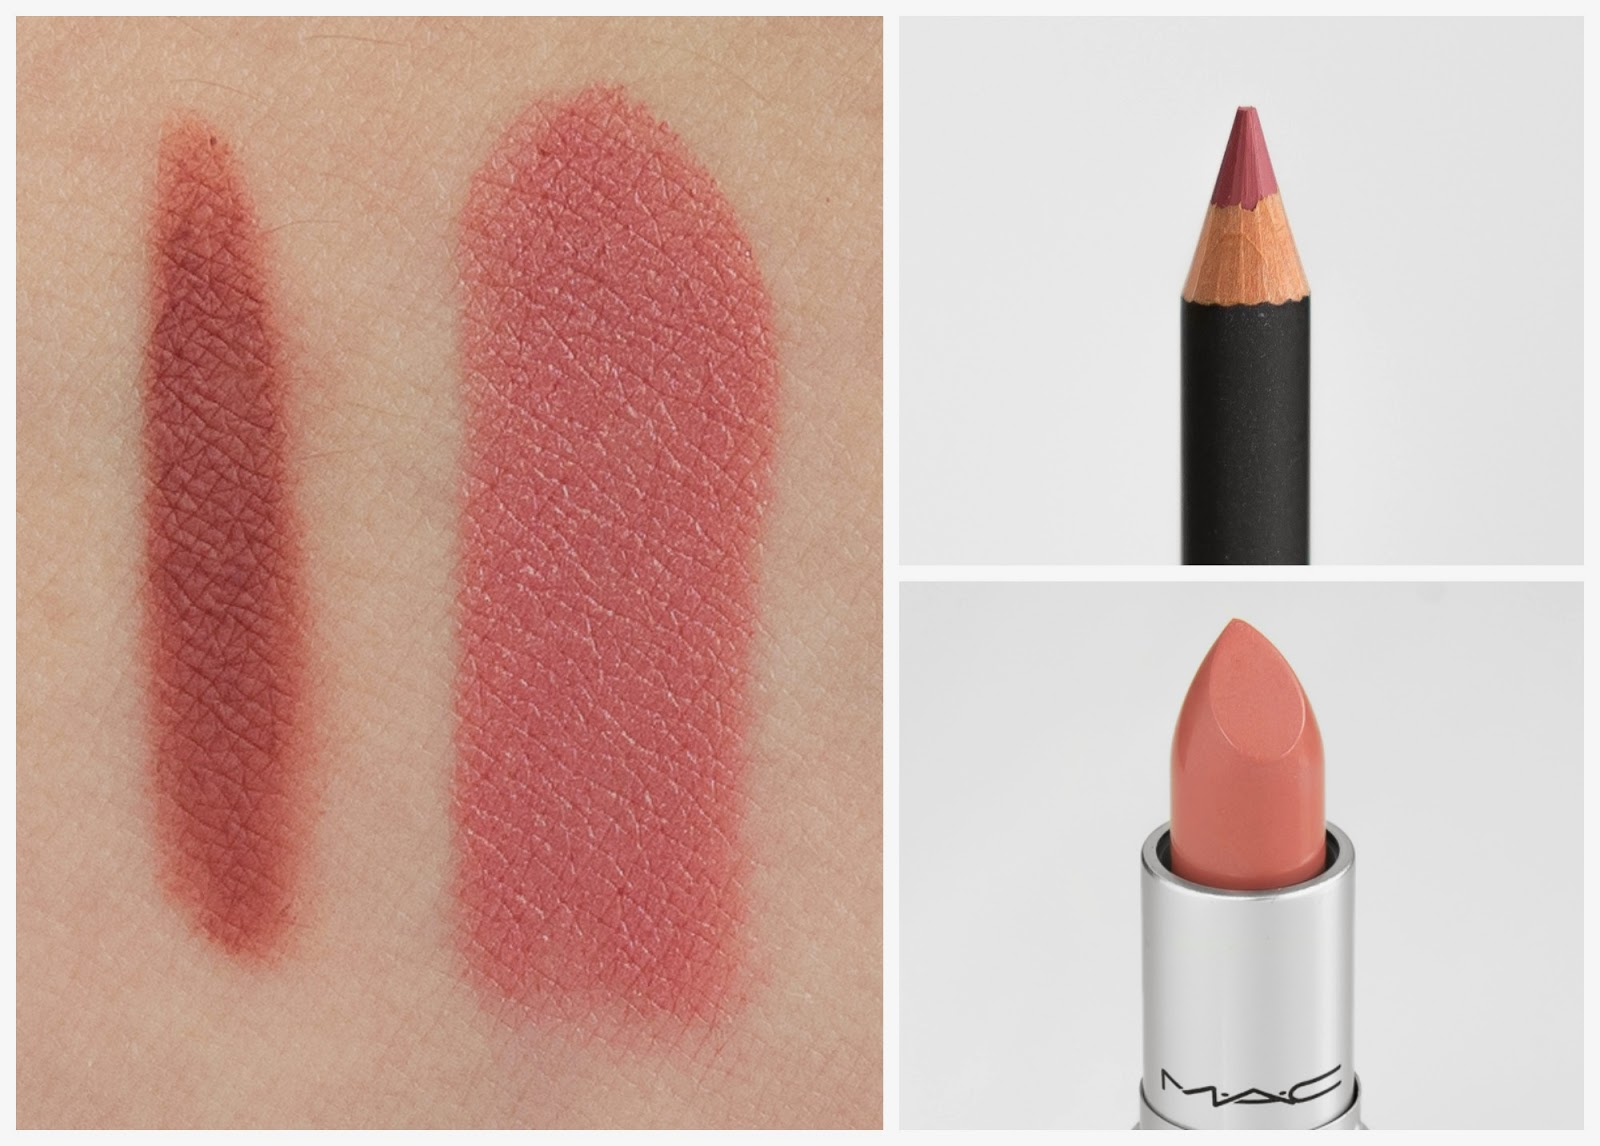 Lip liners get a bad rap, probably because they make people think of that awful lined-lips-with-nude-lipstick look. But skipping a lip liner is a missed opportunity to make your lips .